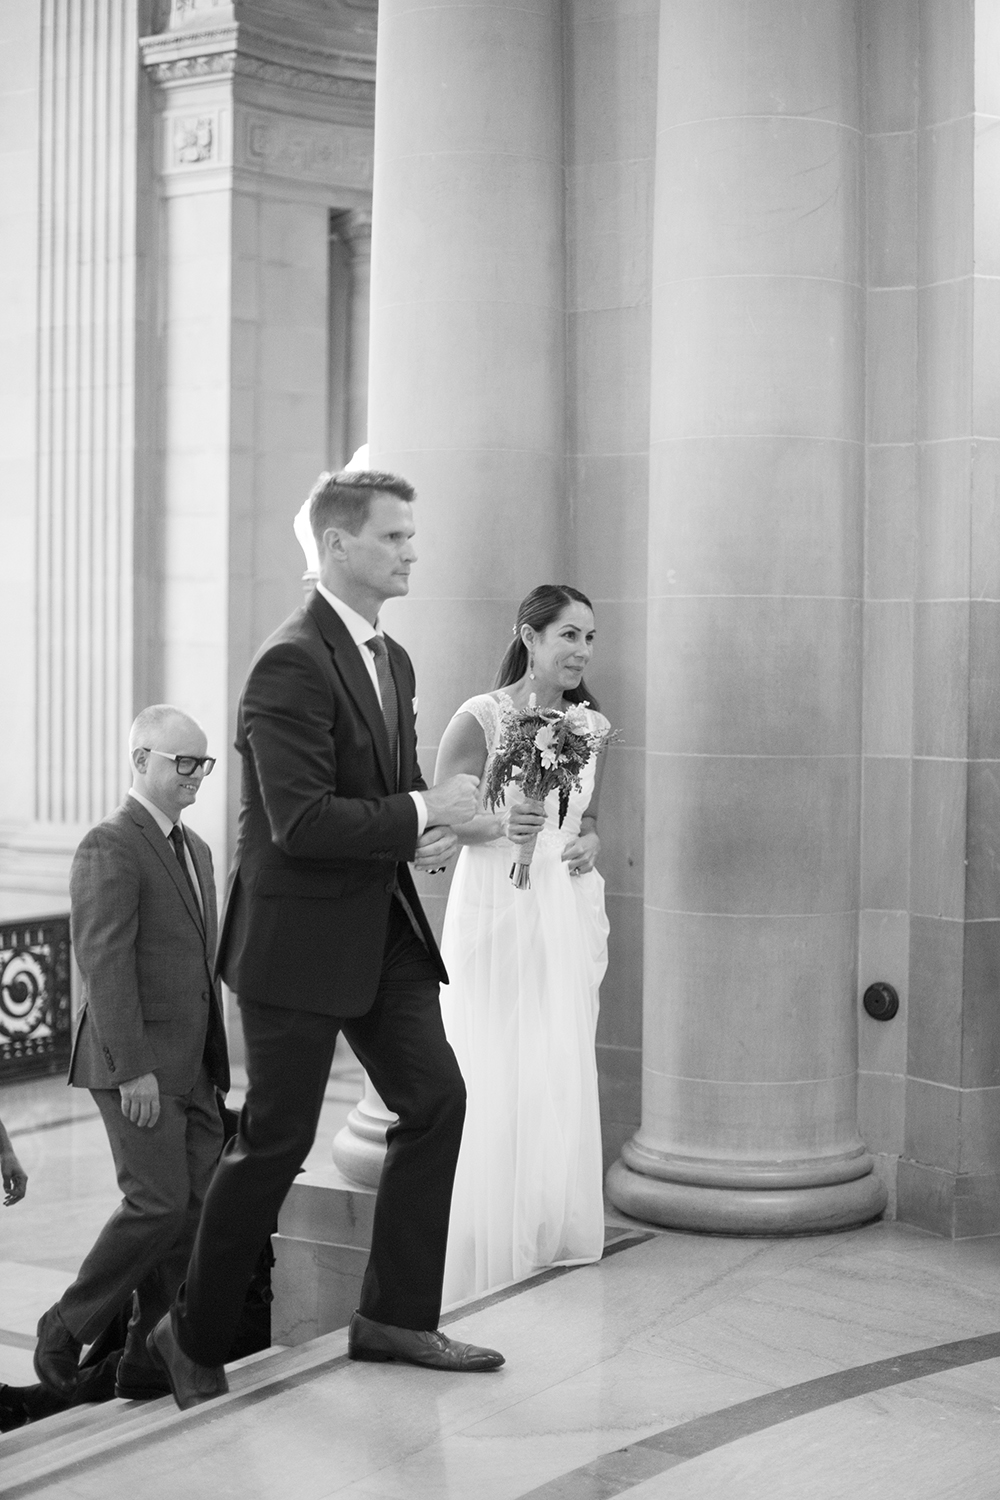 Bride and groom walking towards their wedding ceremony in San Francisco City Hall.